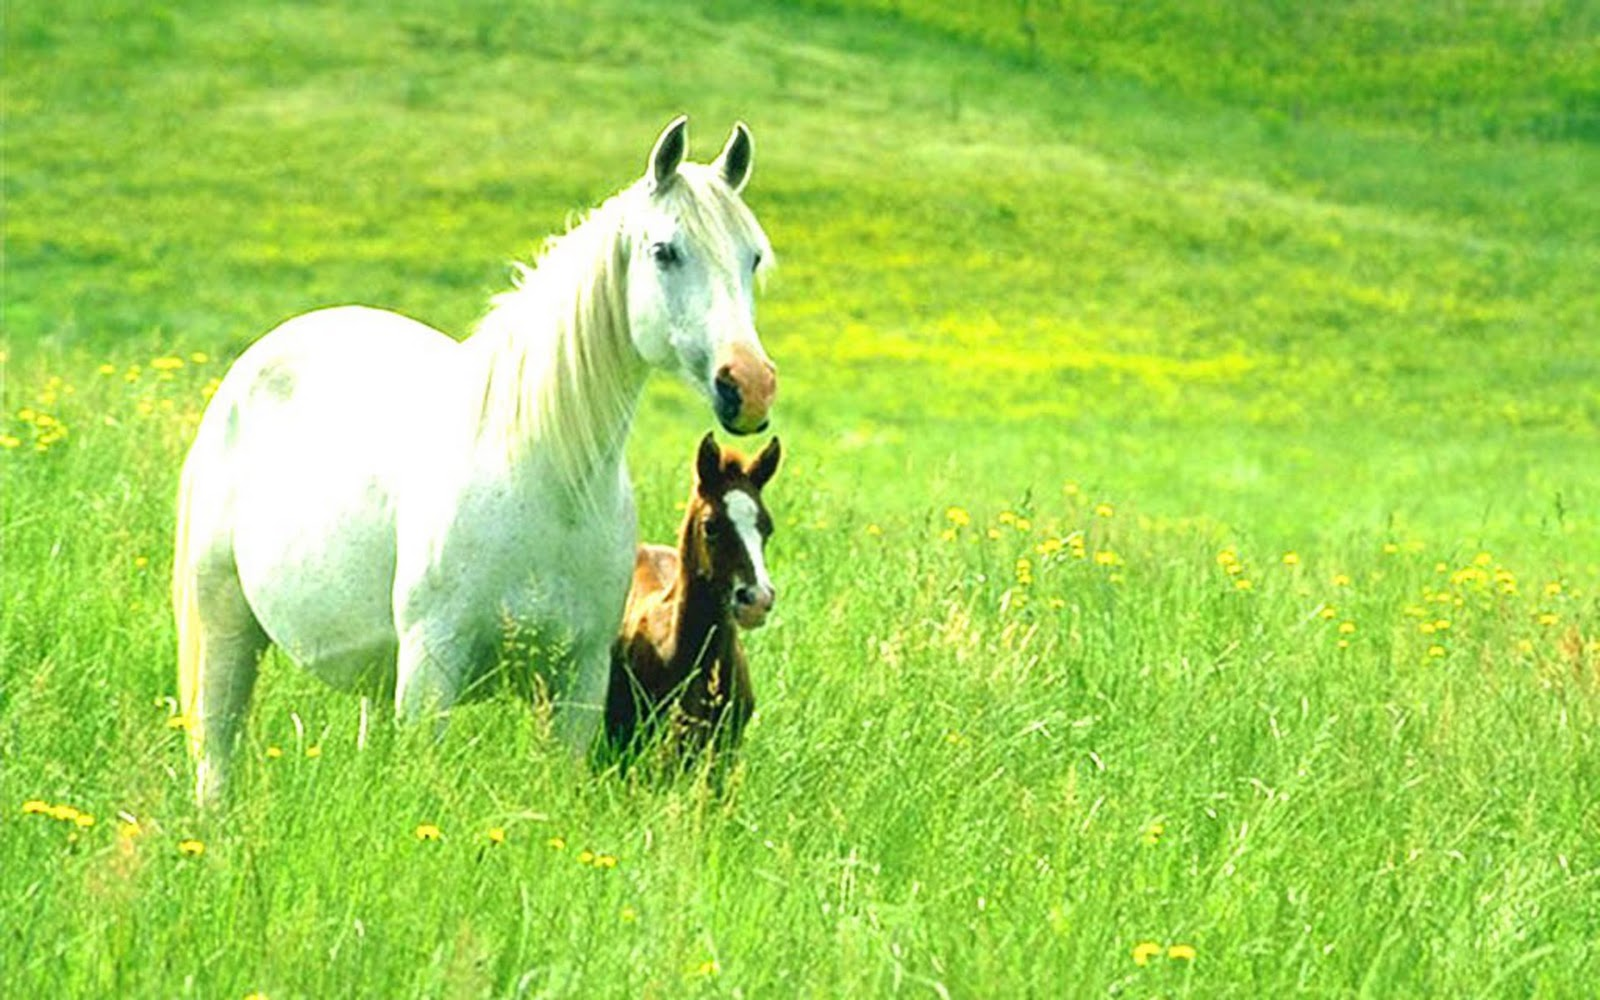 Beauty Full Horse Wallpapers And Animal Wallpapers